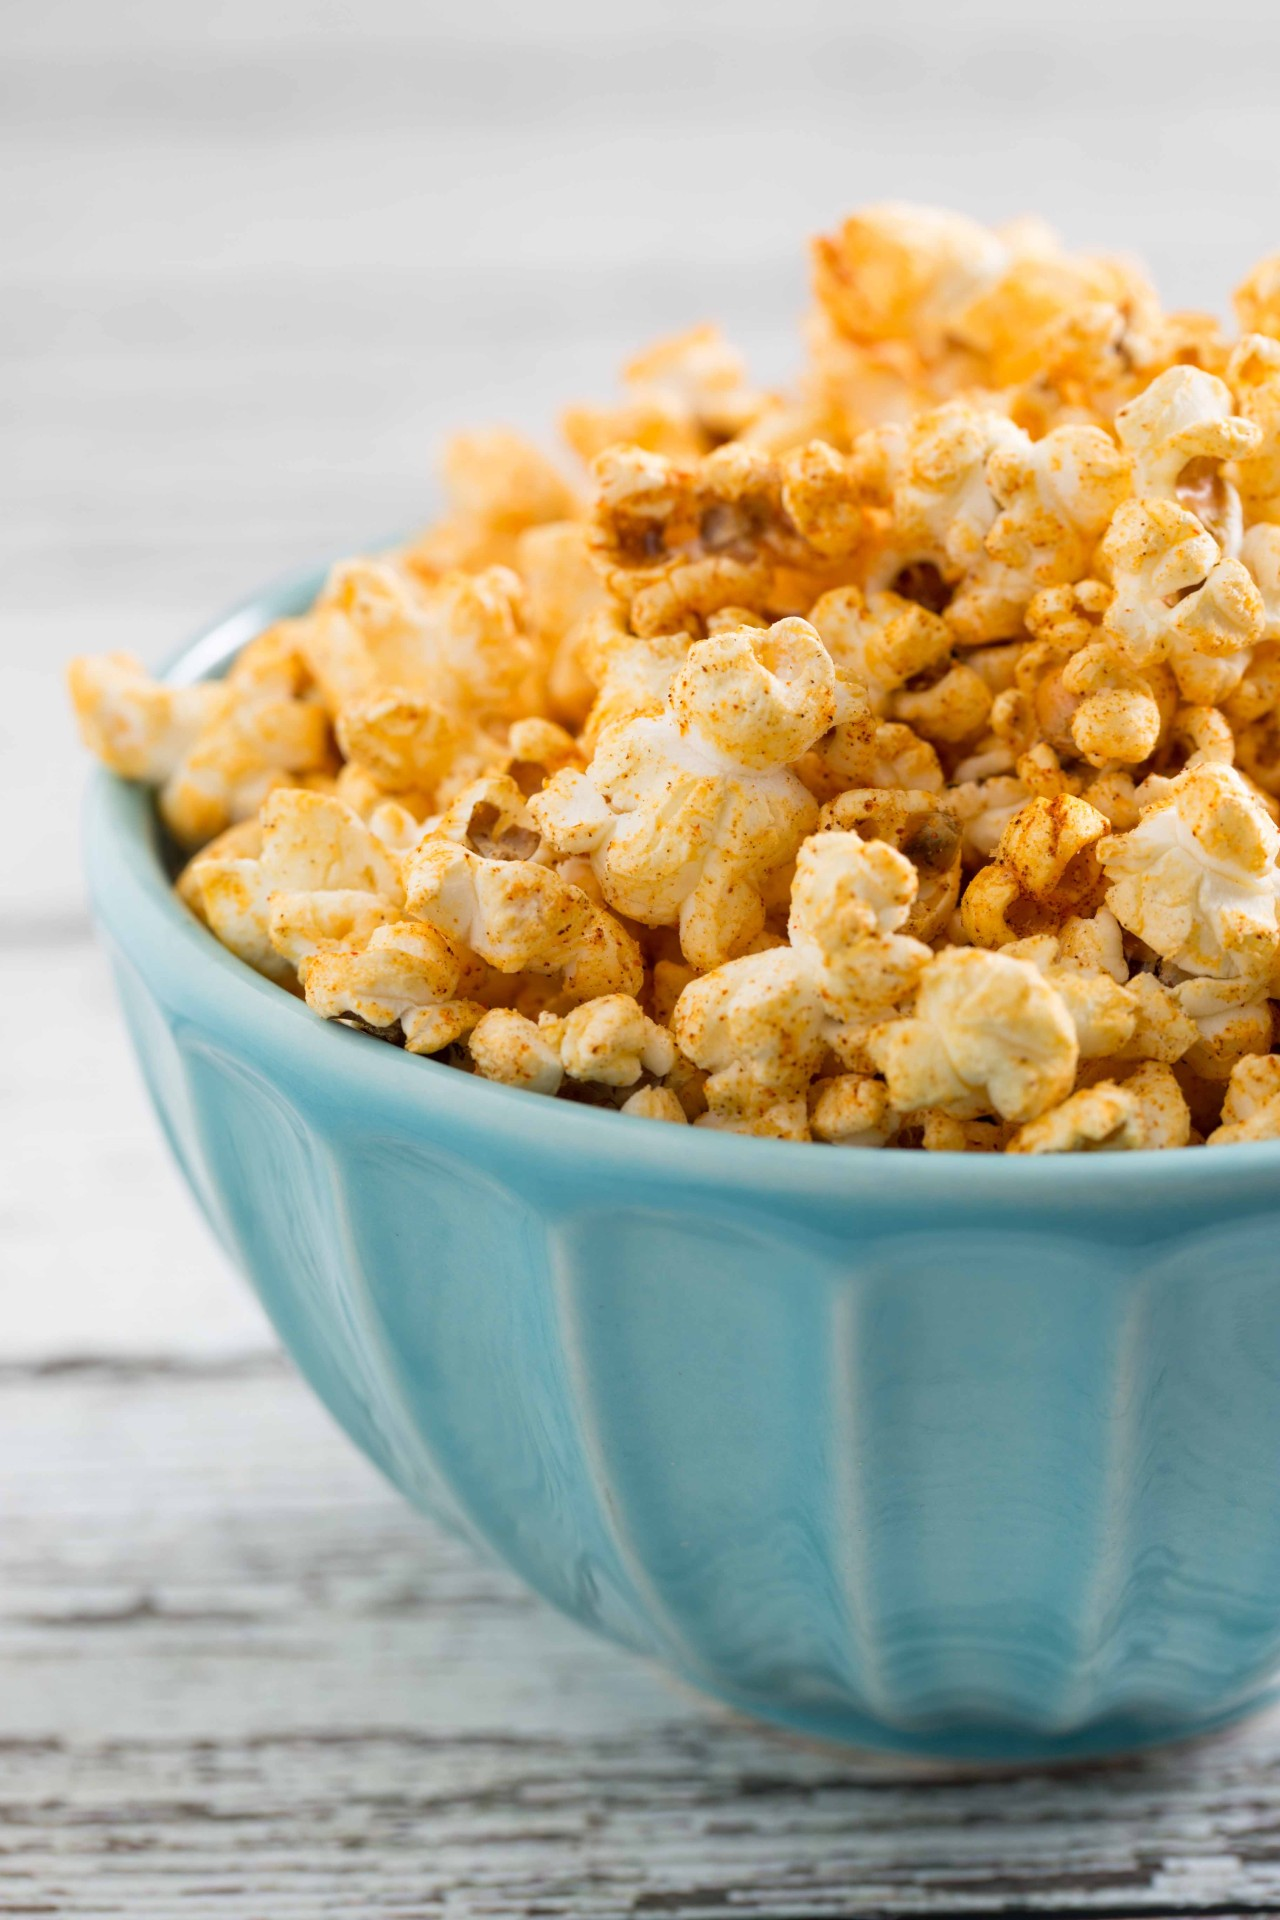 Homemade Barbecue Popcorn - Overtime Cook